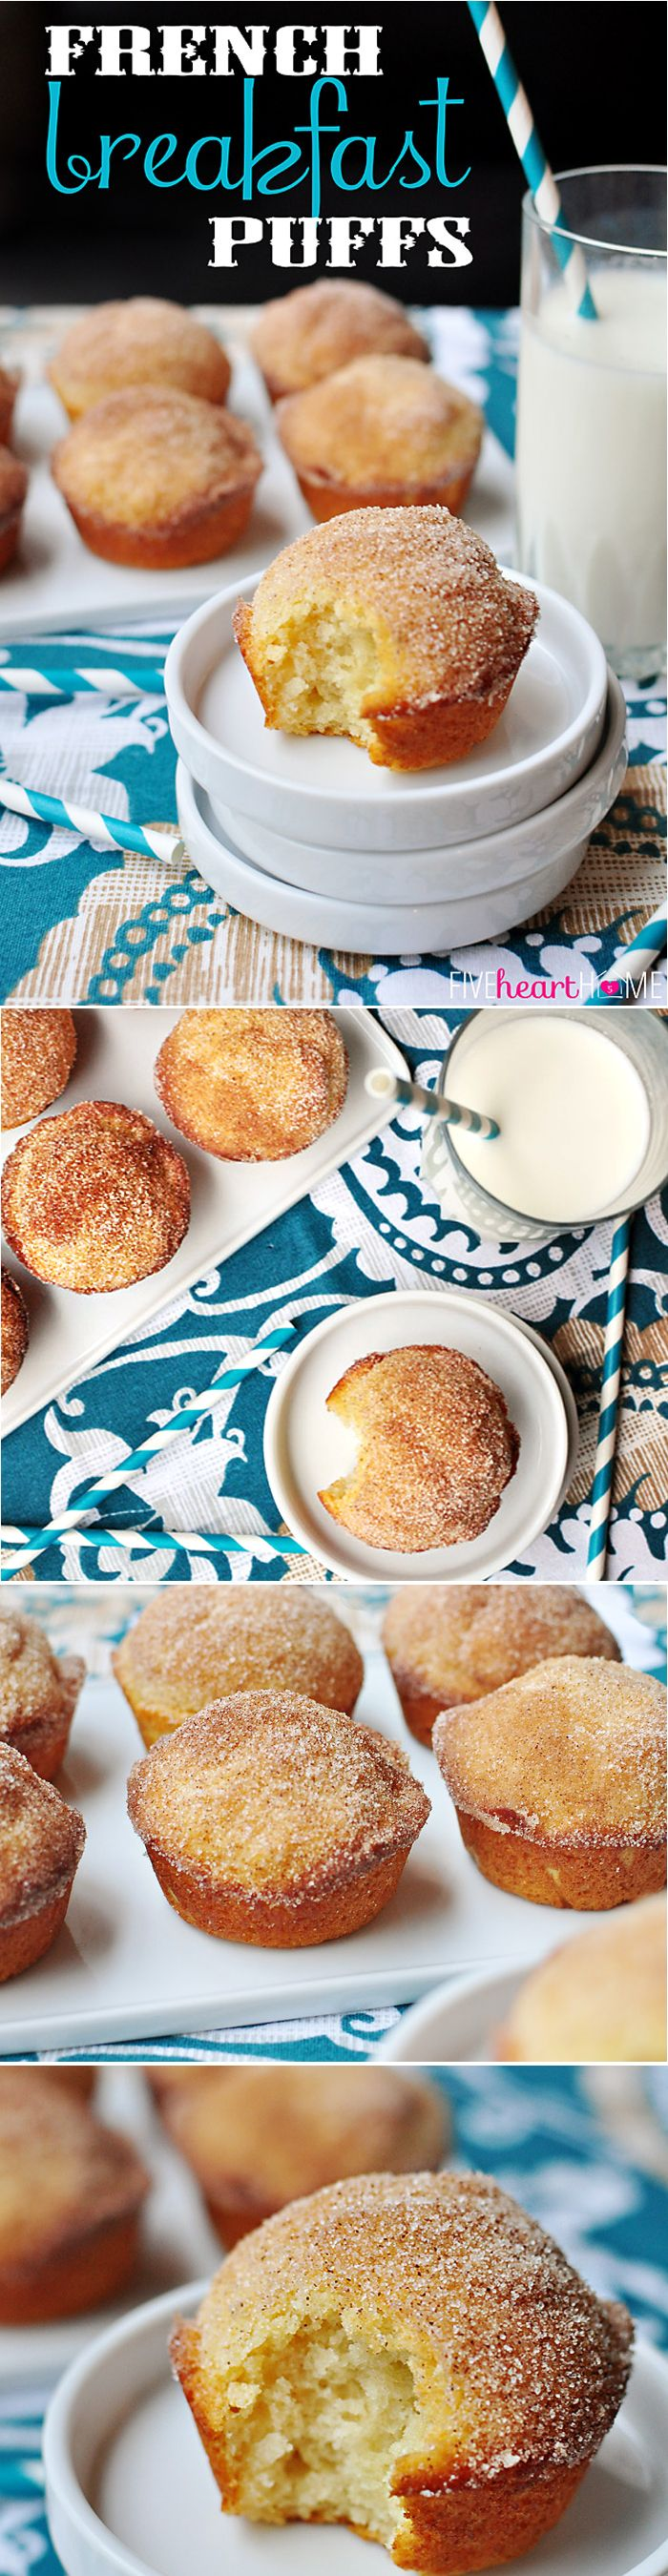 French Breakfast Puffs ~ tender vanilla muffins are drenched in melted butter and dipped in cinnamon sugar for a sweet and crunchy coating that makes breakfast time a treat! | FiveHeartHome.com